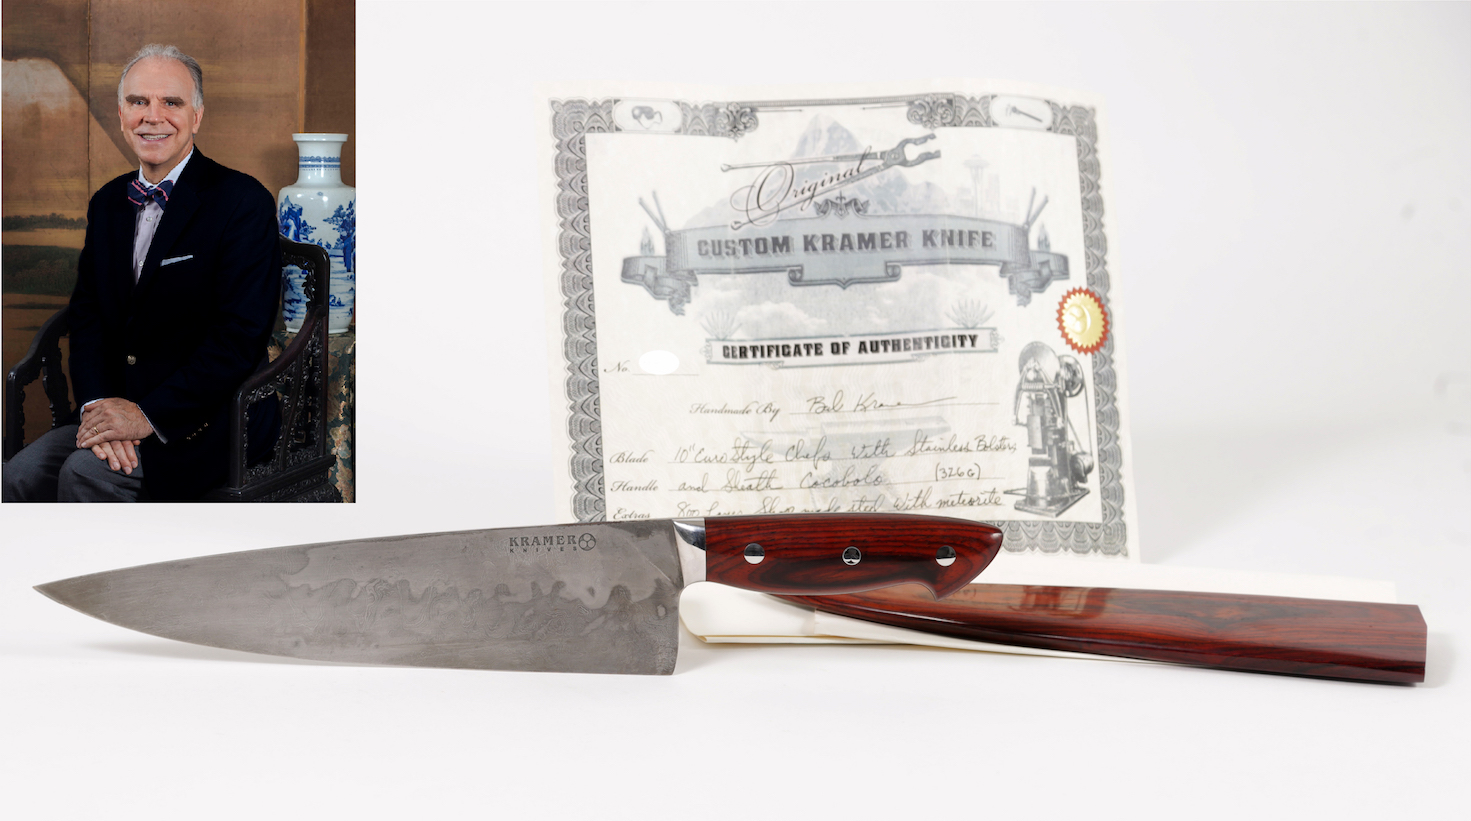 Photo of Anthony Bourdain's Meteorite Chef's Knife and the Custom Kramer certificate of authenticity. Inset of Lark Mason posed in a chair in front of a vase.